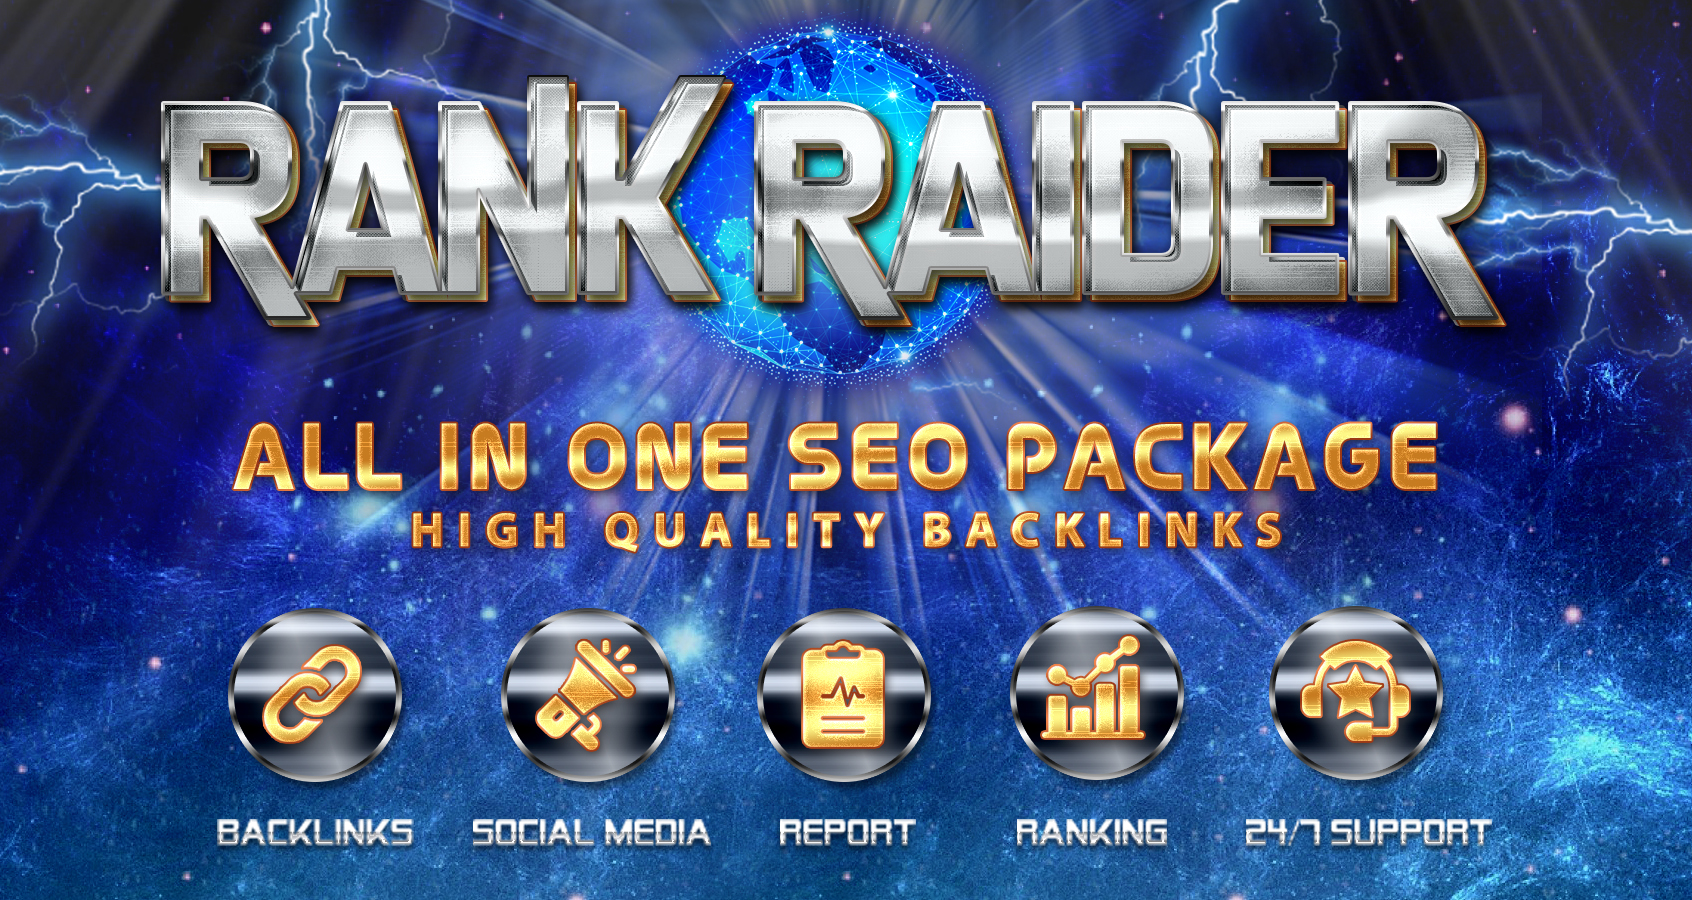 Rank Raider- All in One SEO Package Secret Formula to get 1 Google Ranking